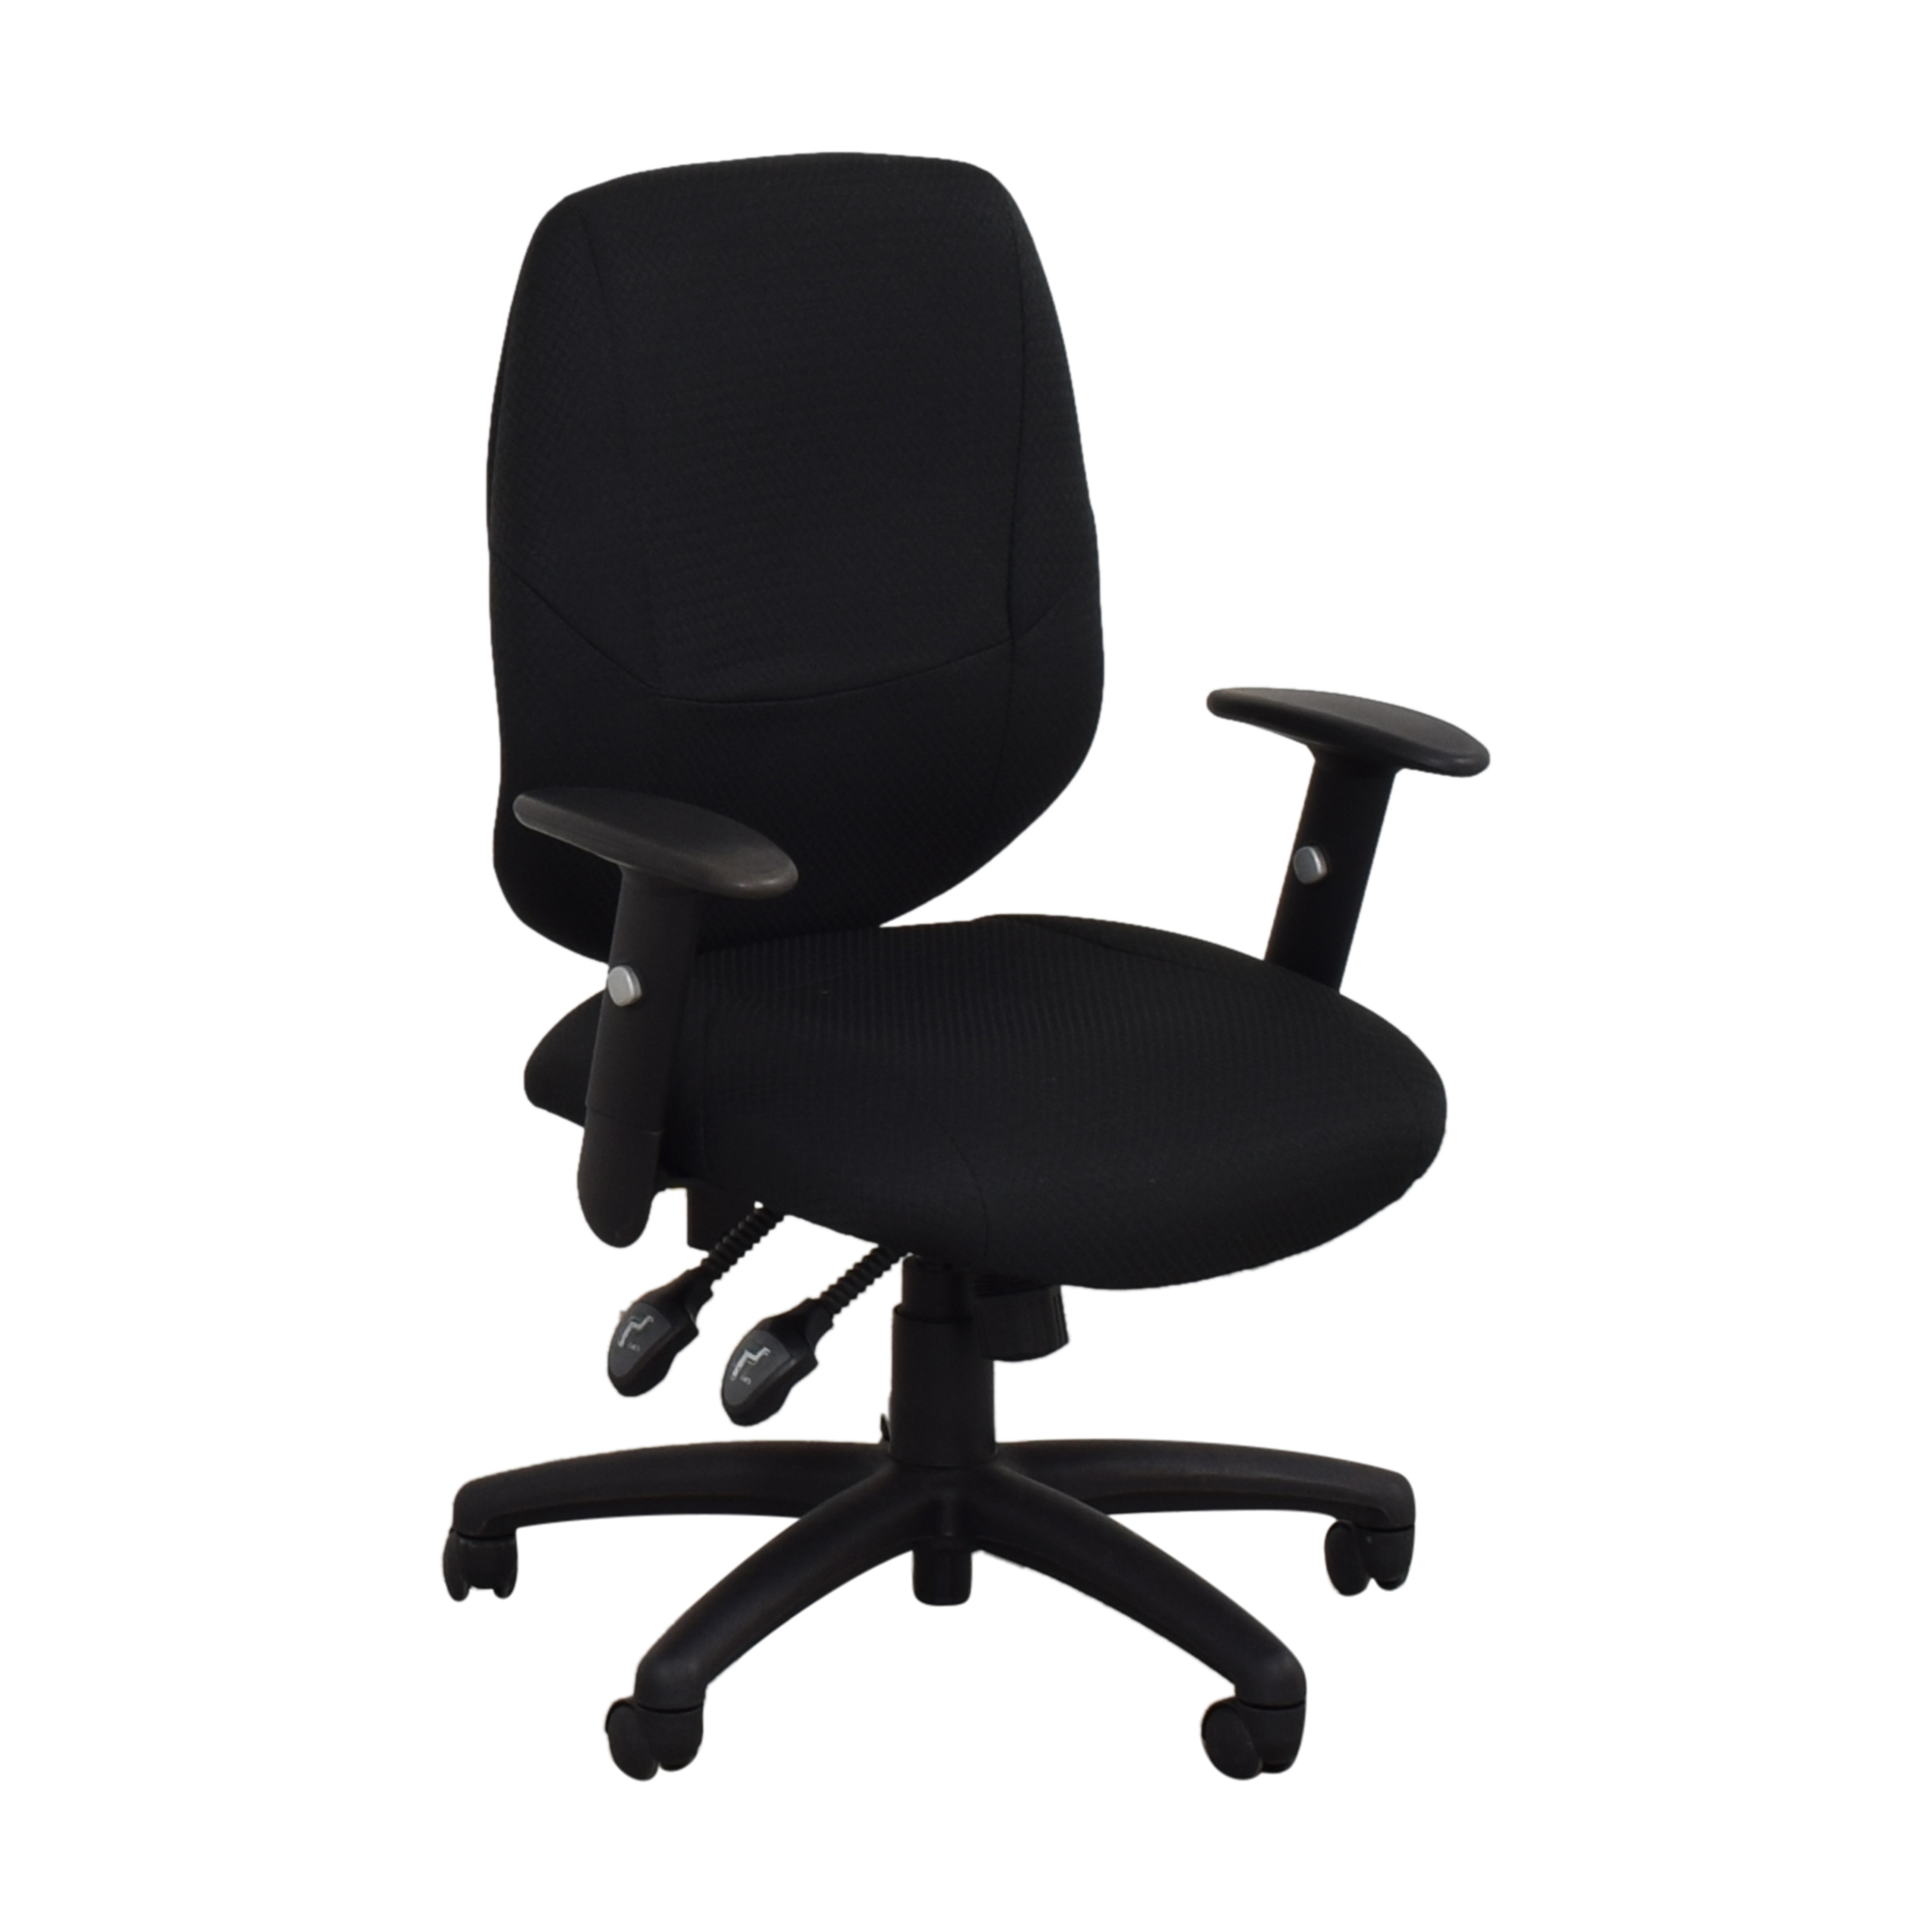 Offices to Go Offices to Go Adjustable Office Chair nj